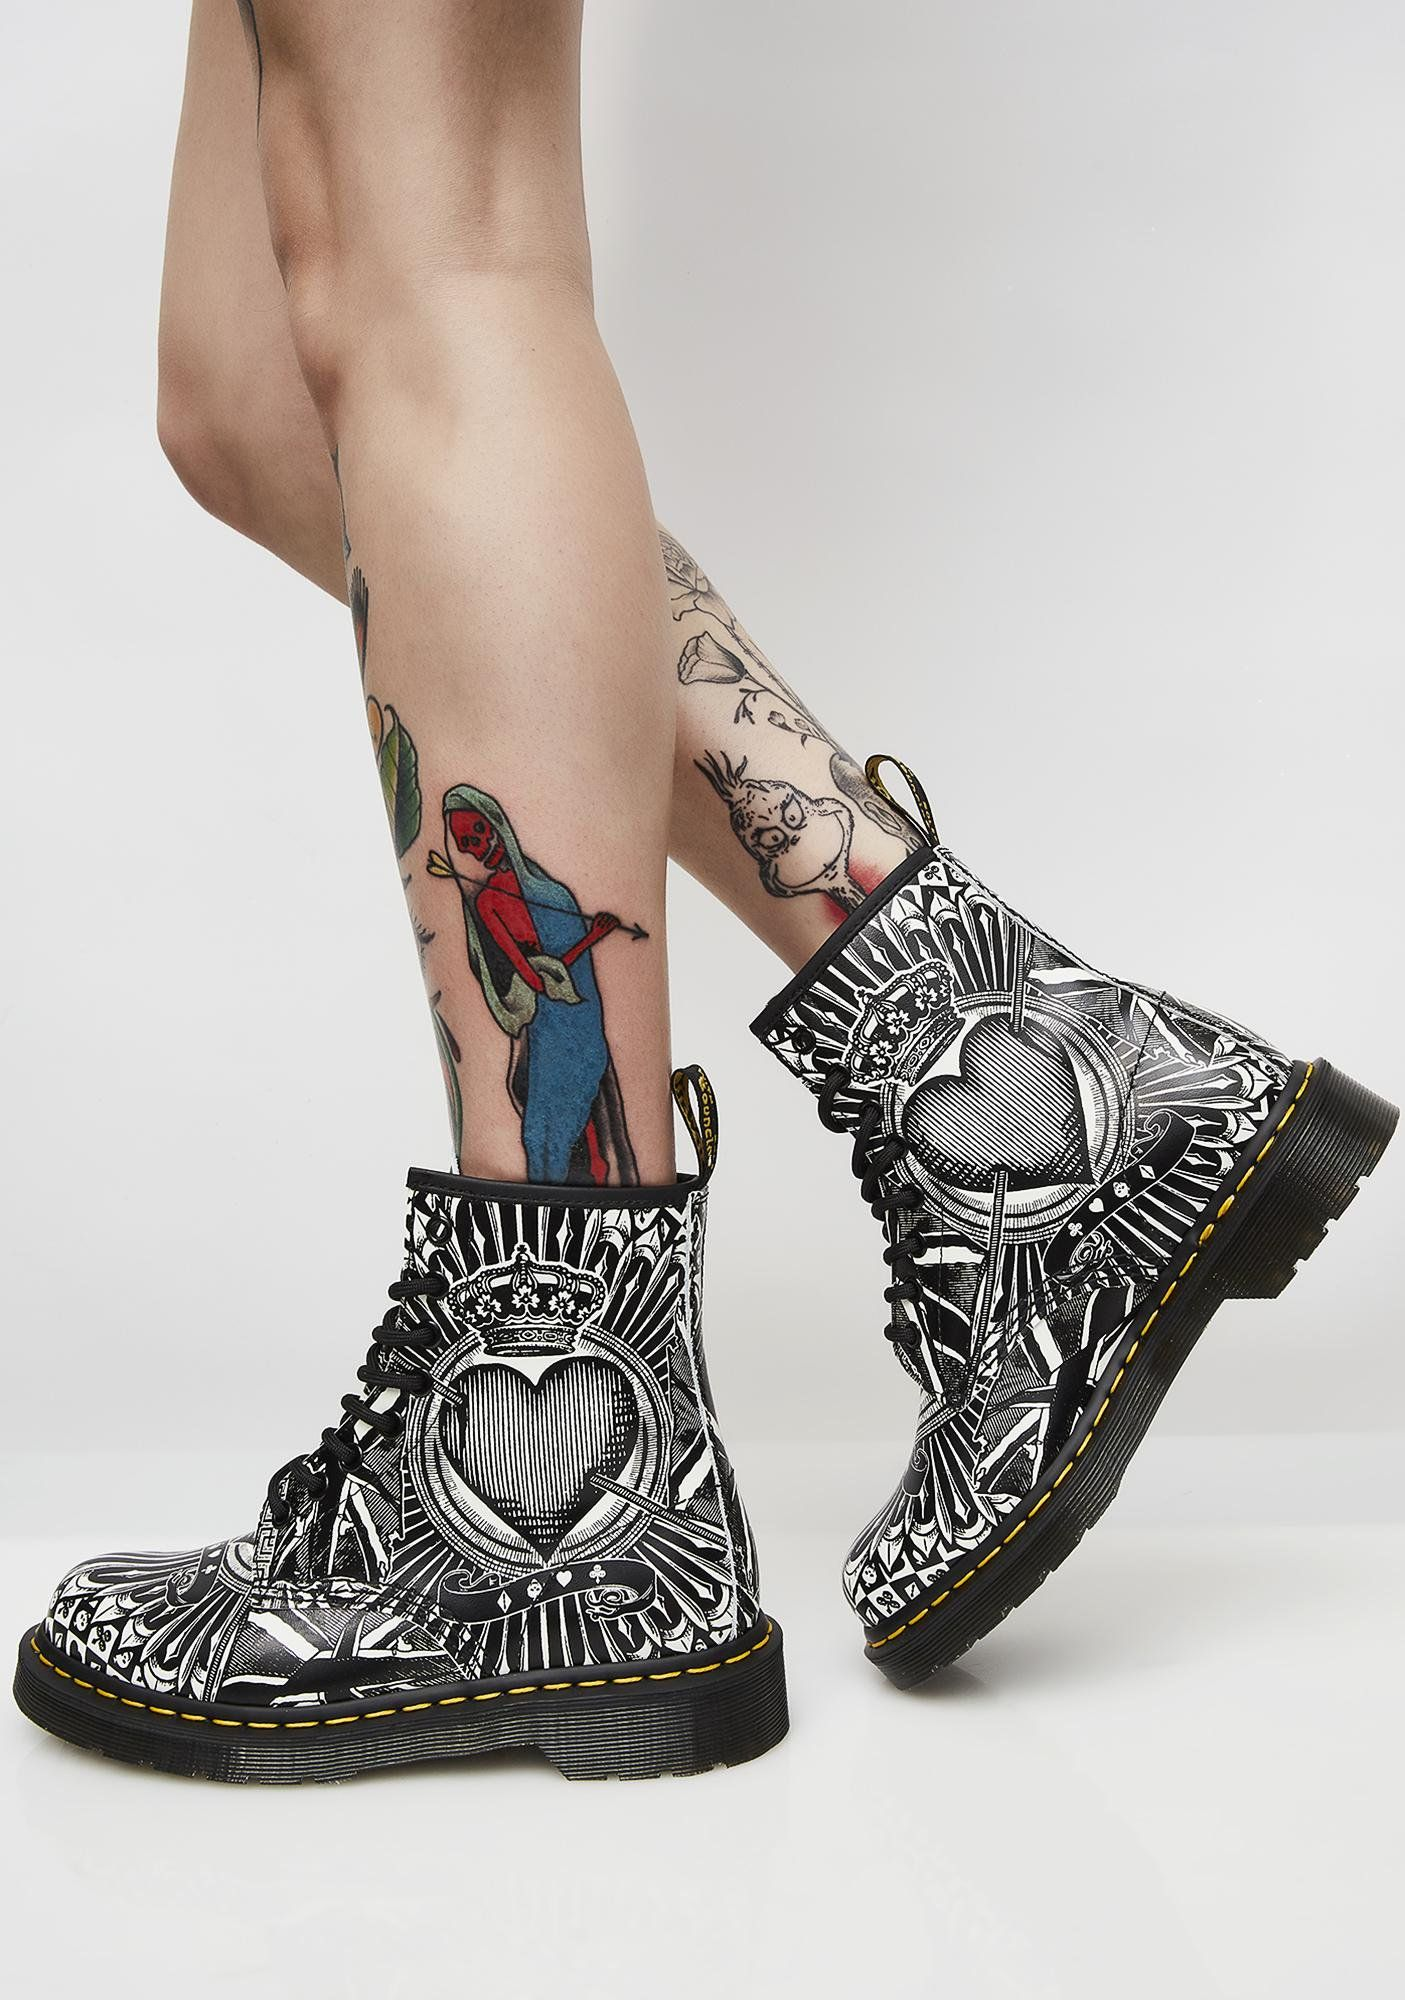 eb506e5290c Dr. Martens 1460 8 Eye Playing Card Boots cuz you know how to win. These  combat boots have a black N  white graphic exterior